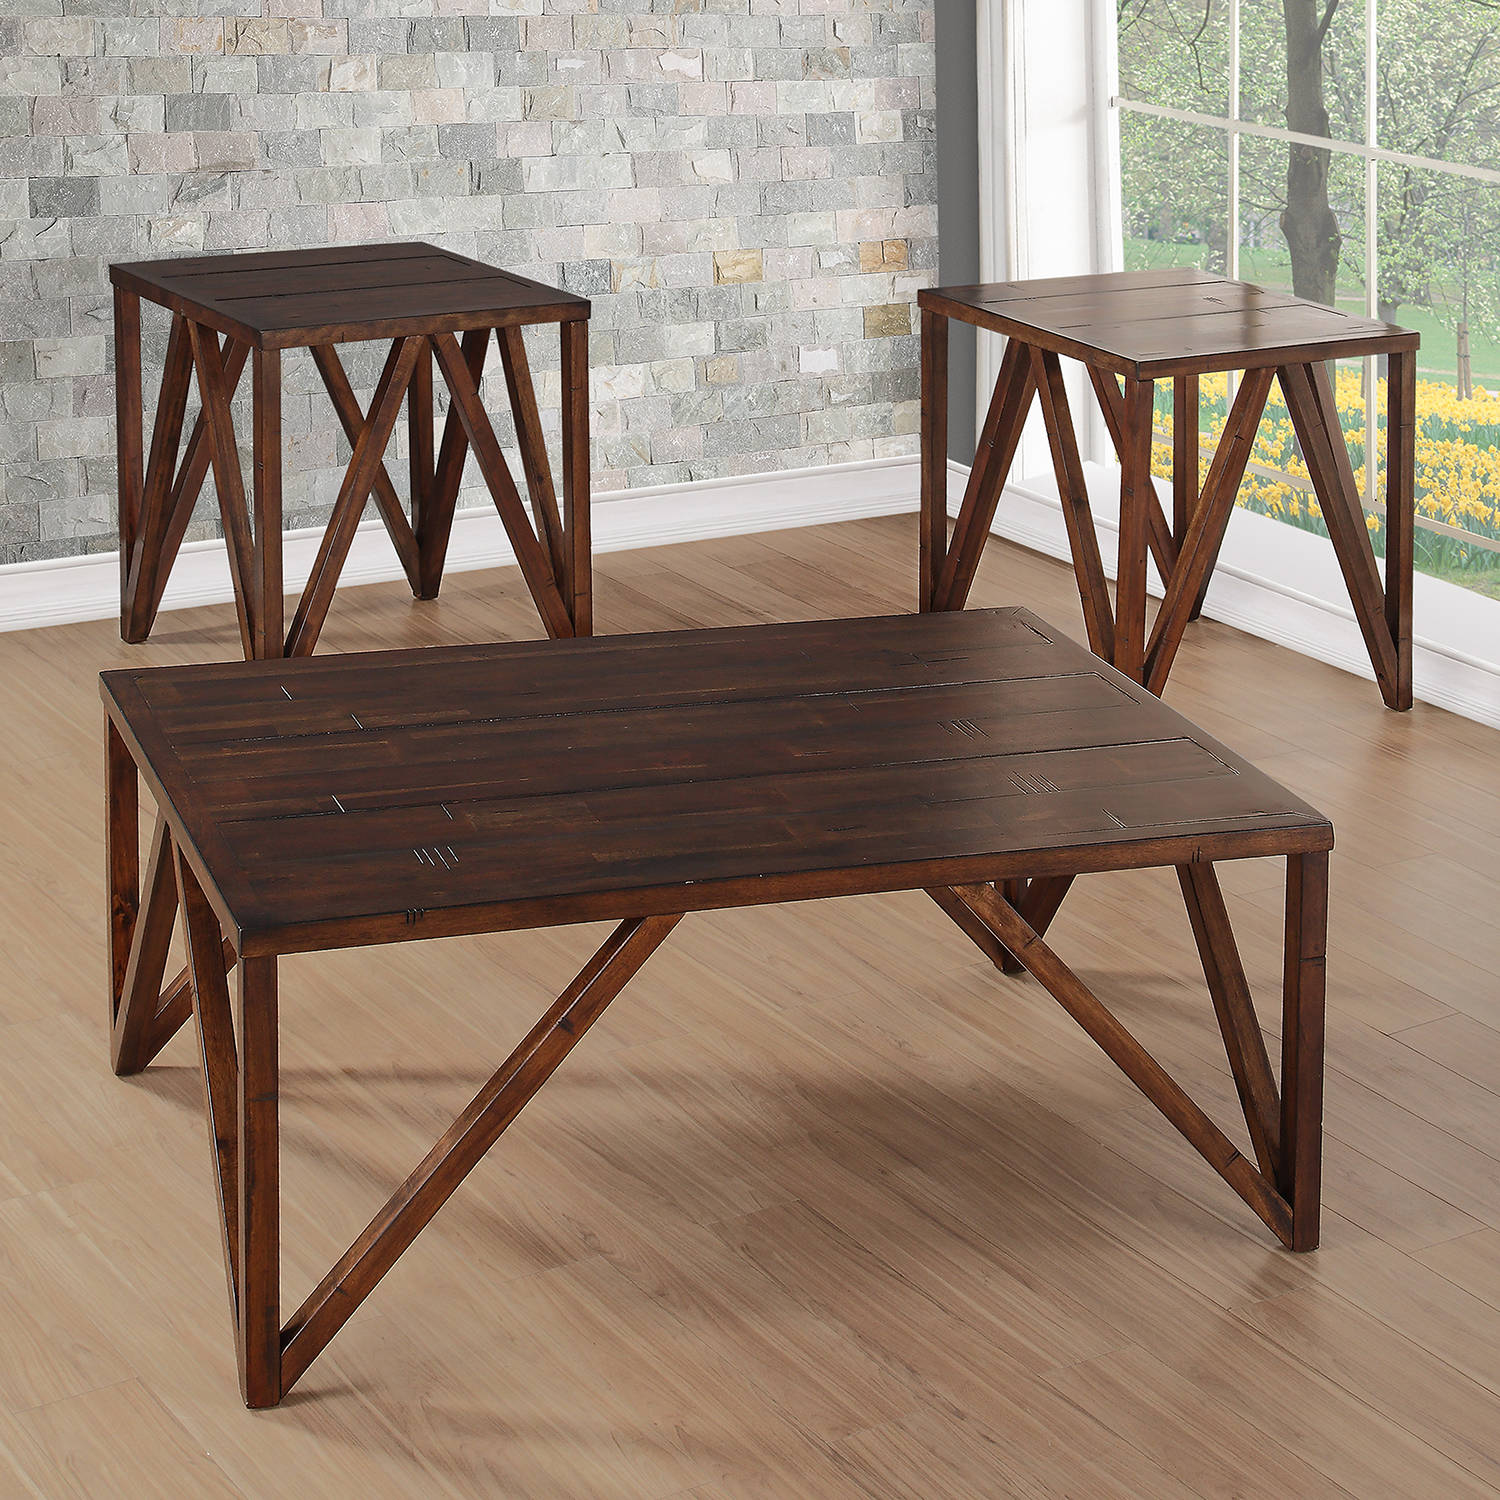 Bali coffee table brown walmart geotapseo Image collections